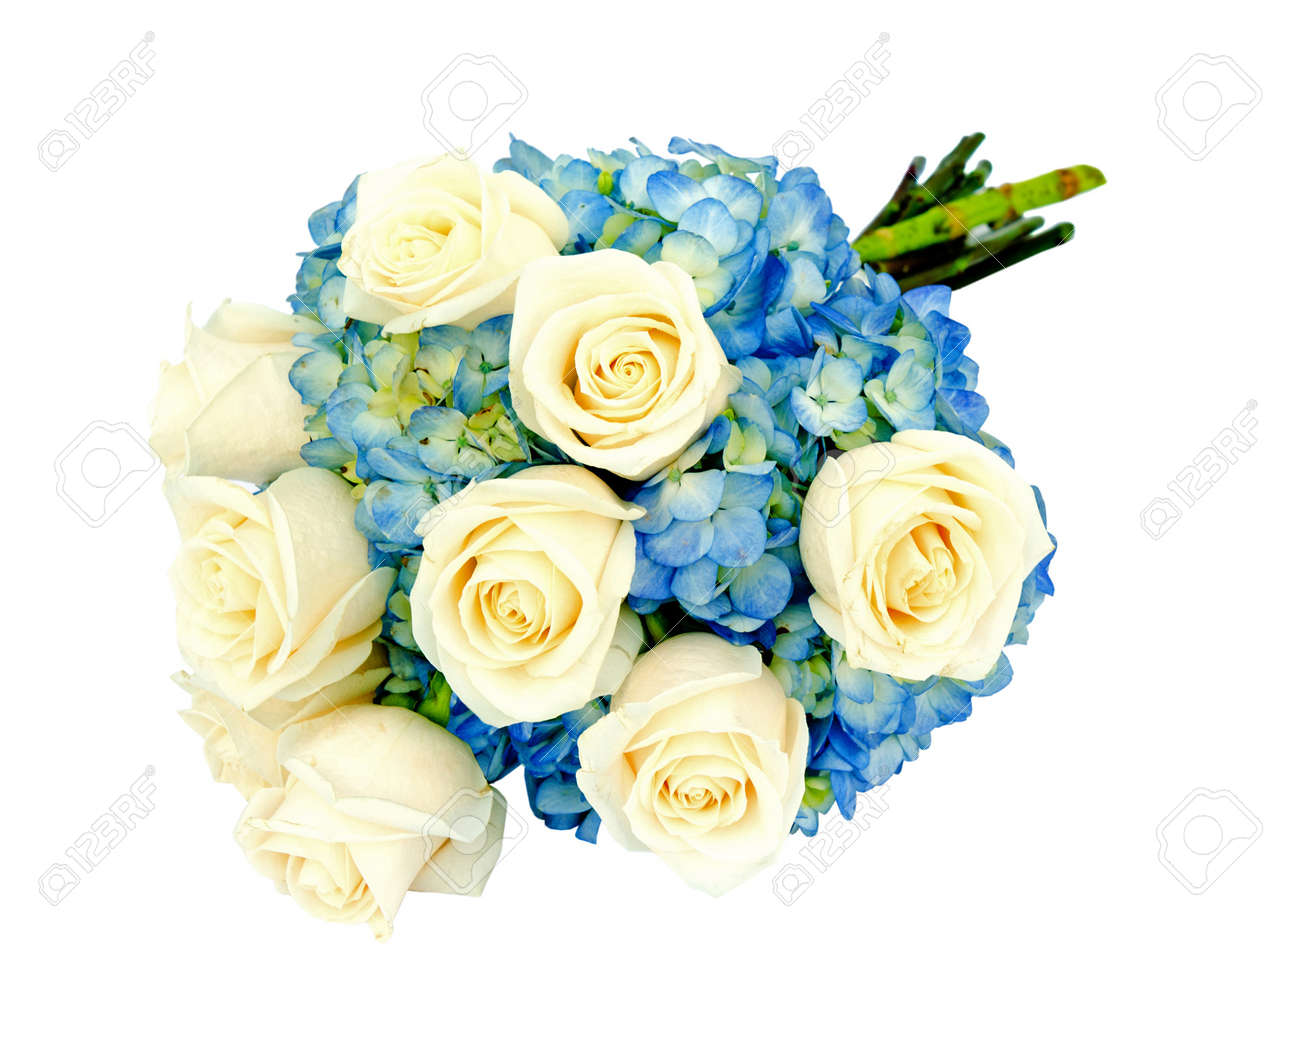 Wedding bridal bouquet flower arrangement with cream roses and stock photo wedding bridal bouquet flower arrangement with cream roses and blue hydrangea isolated on white izmirmasajfo